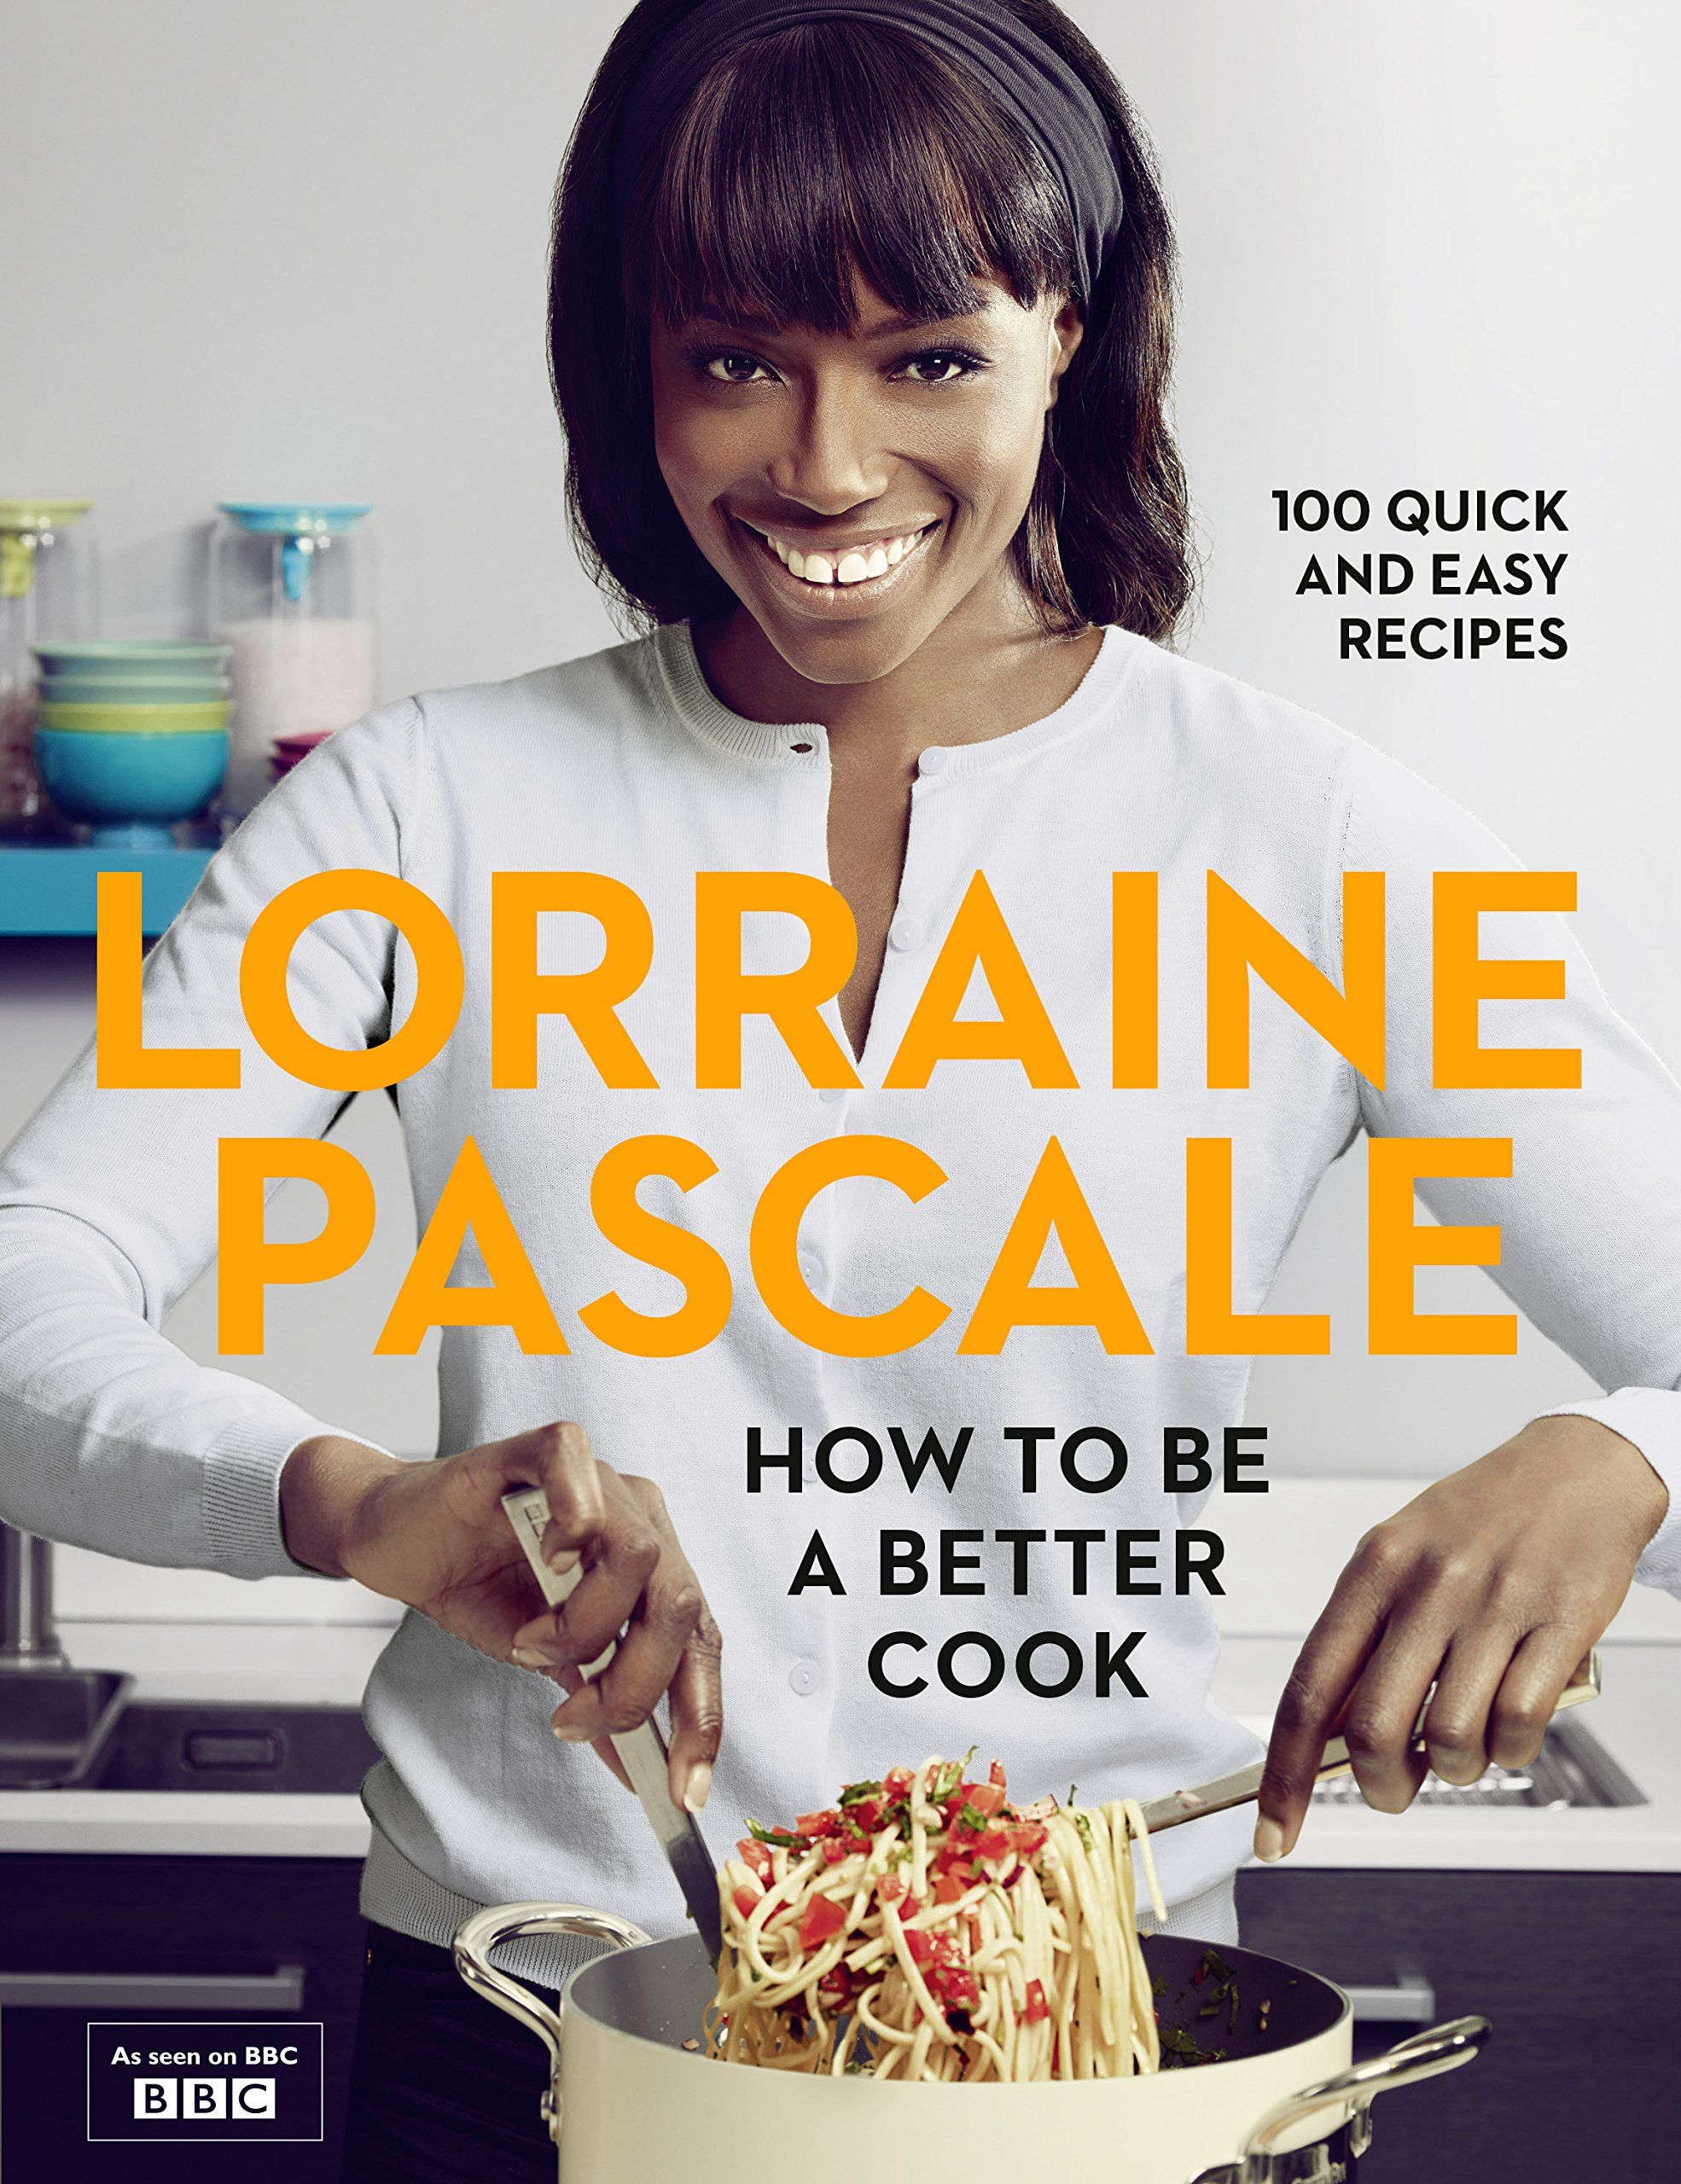 Cocina Lorraine Pascale How To Be A Better Cook Amazon Co Uk Lorraine Pascale Books